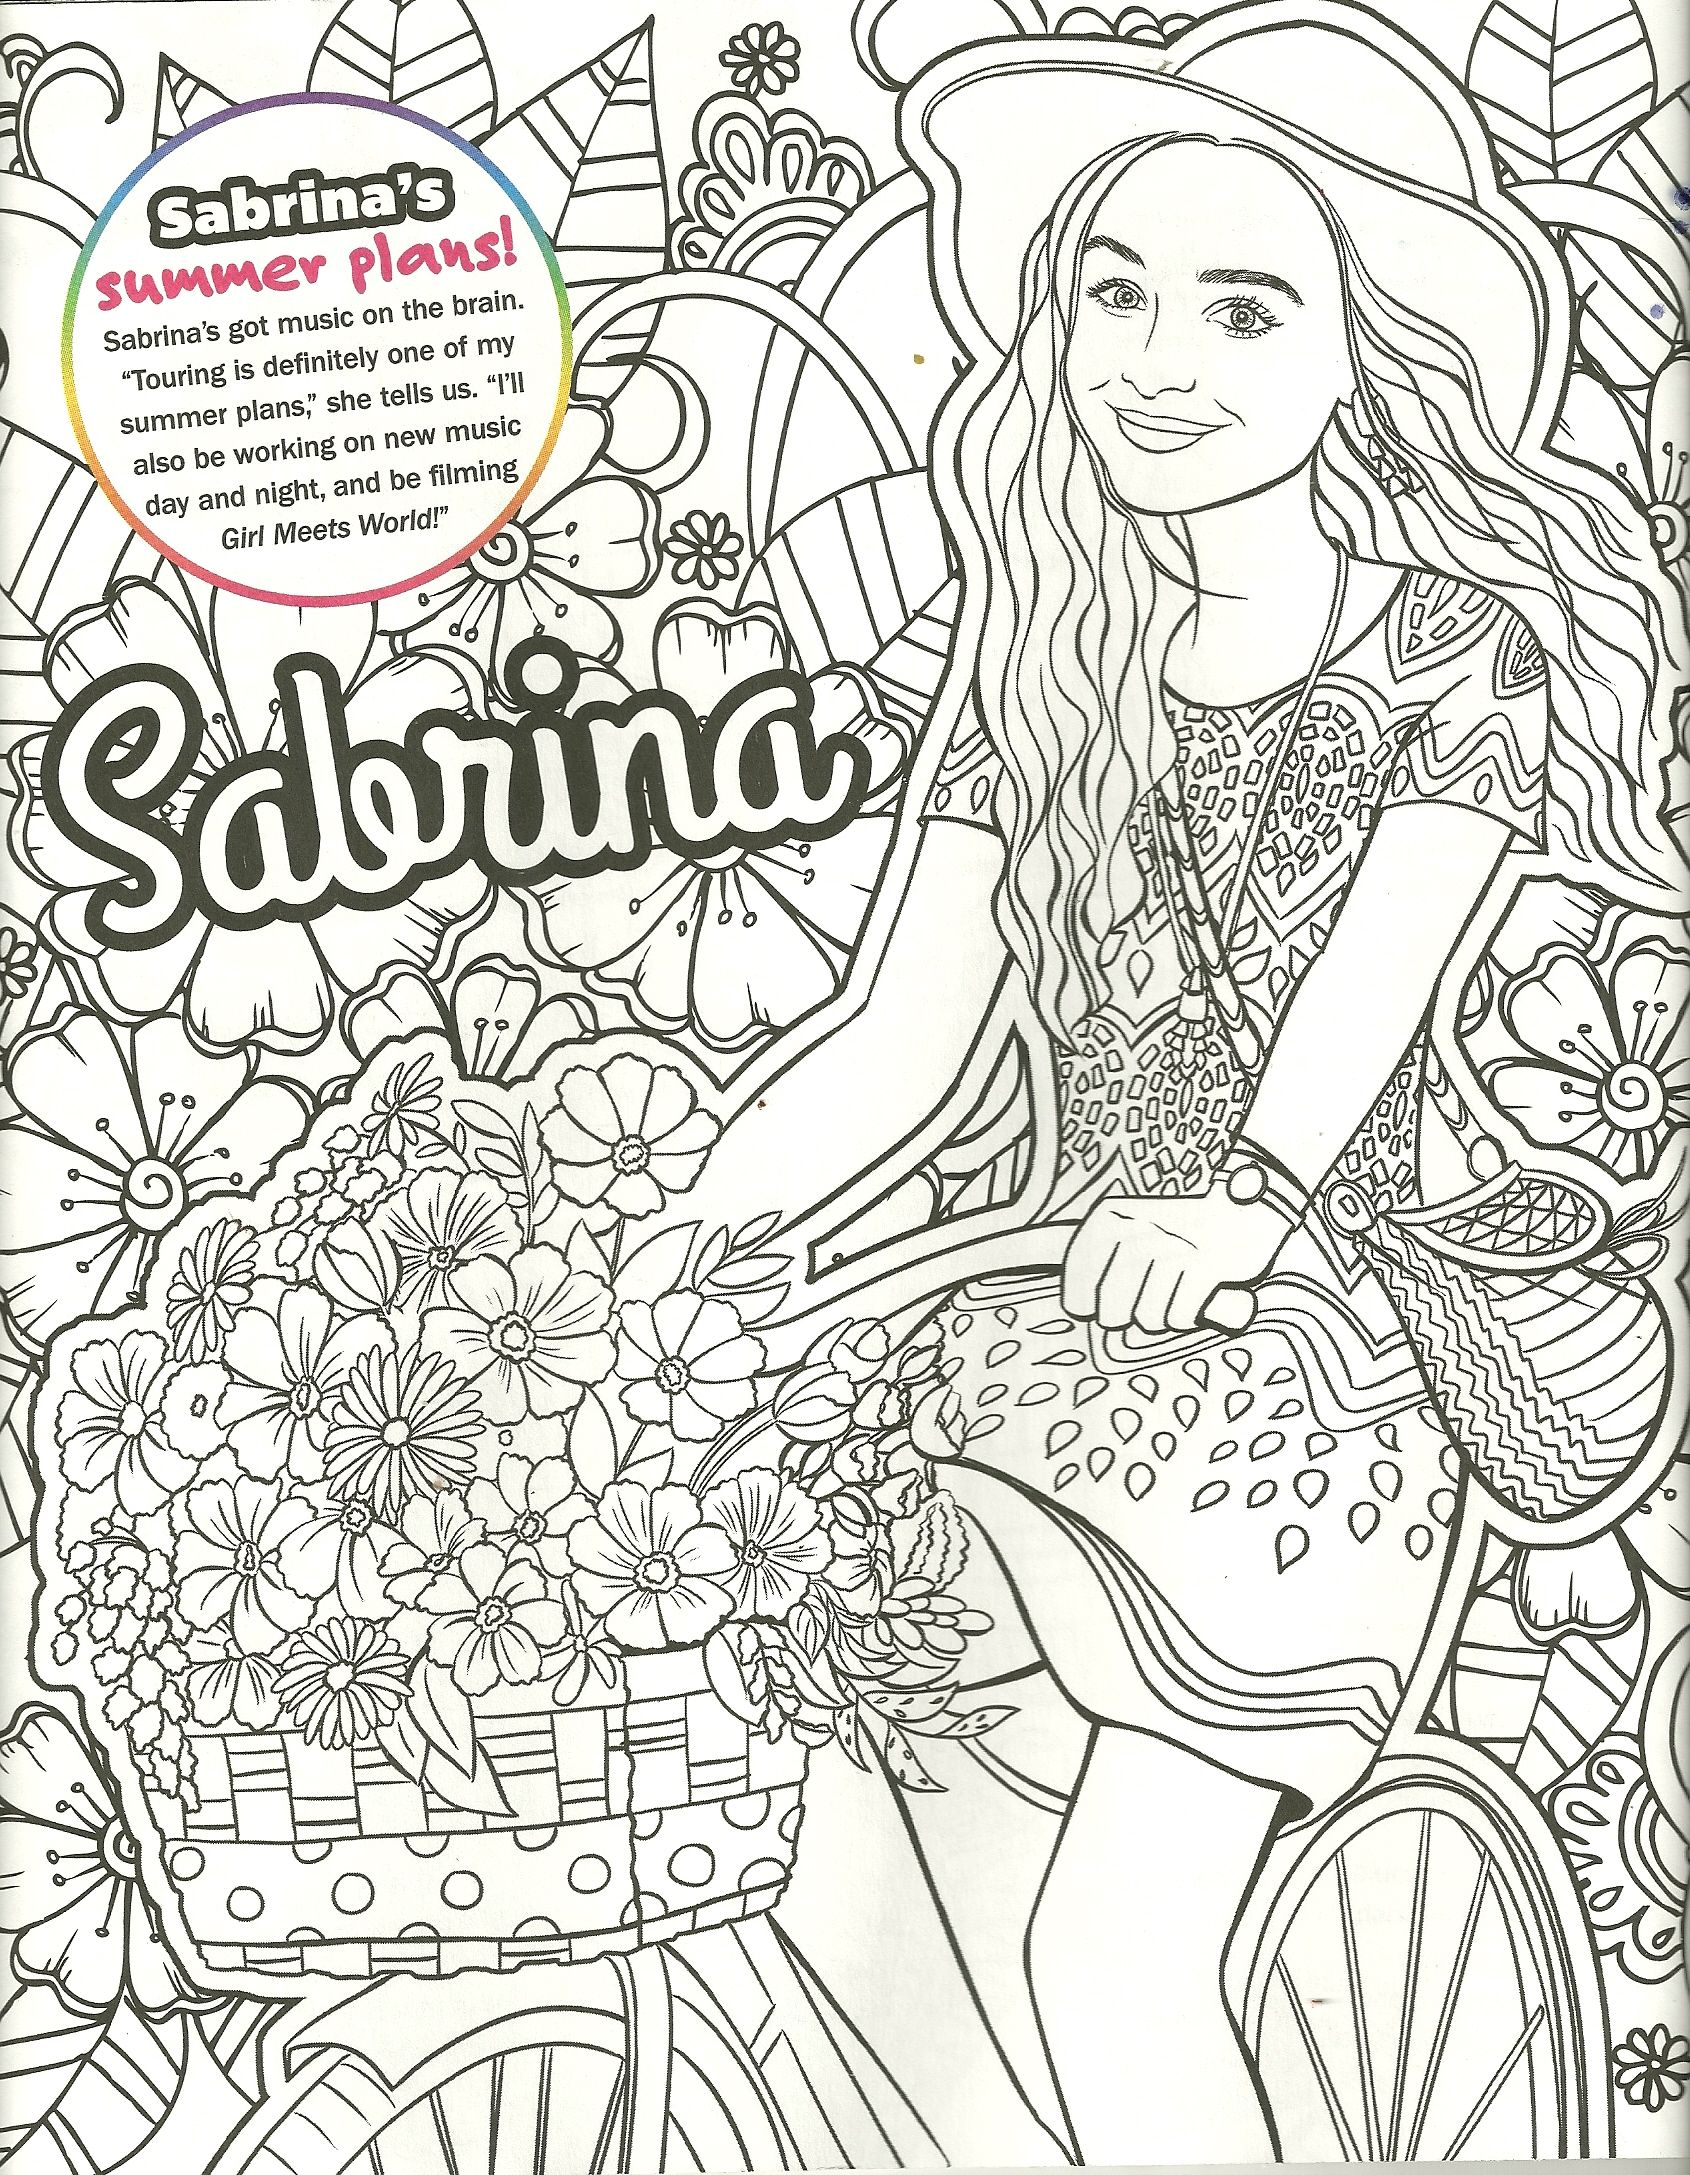 sabrina carpenter coloring page my coloring pages pinterest